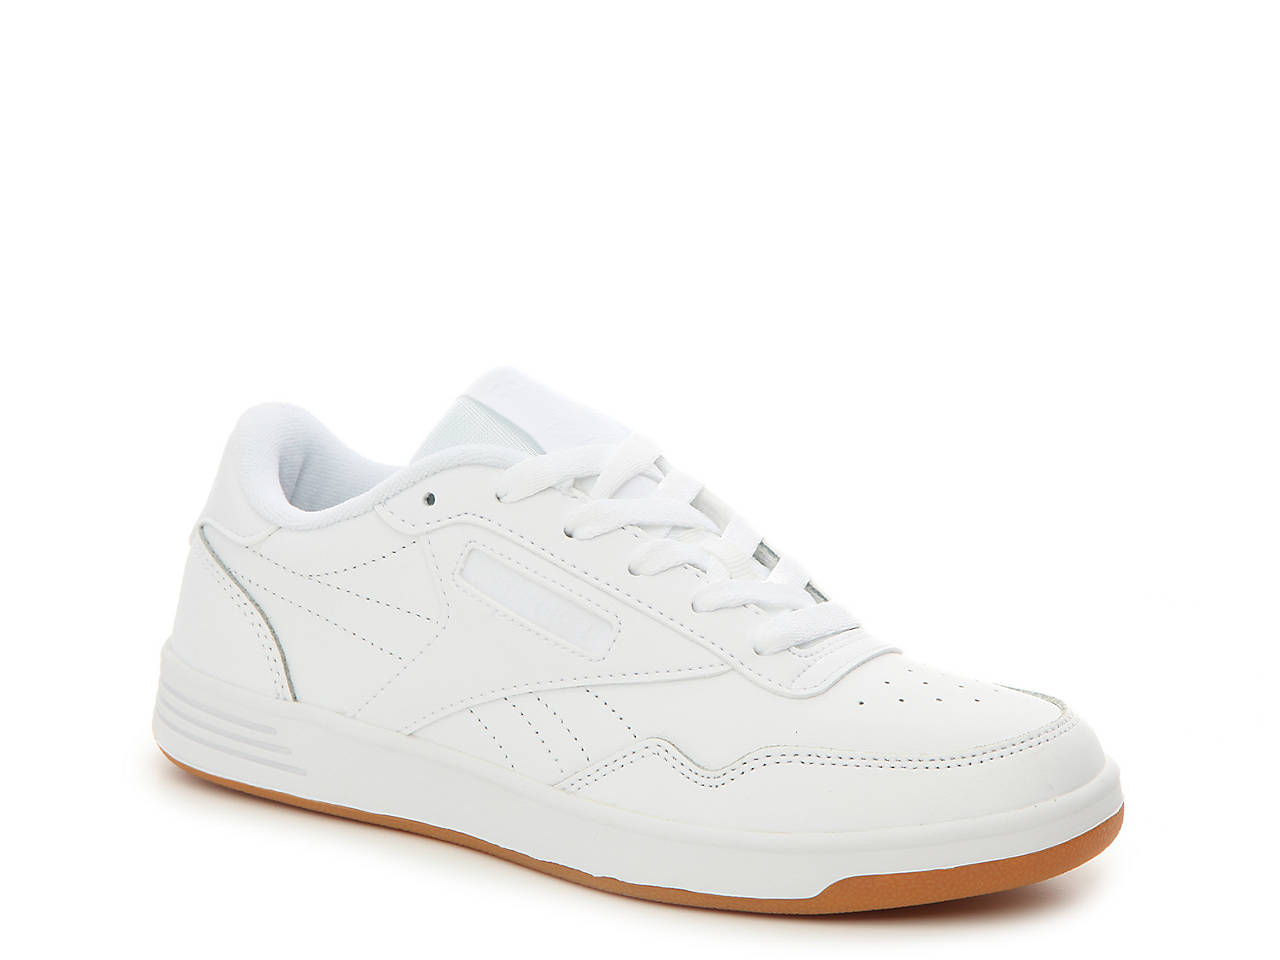 Reebok Club Memt Sneaker - Women s Women s Shoes  2f660b25c